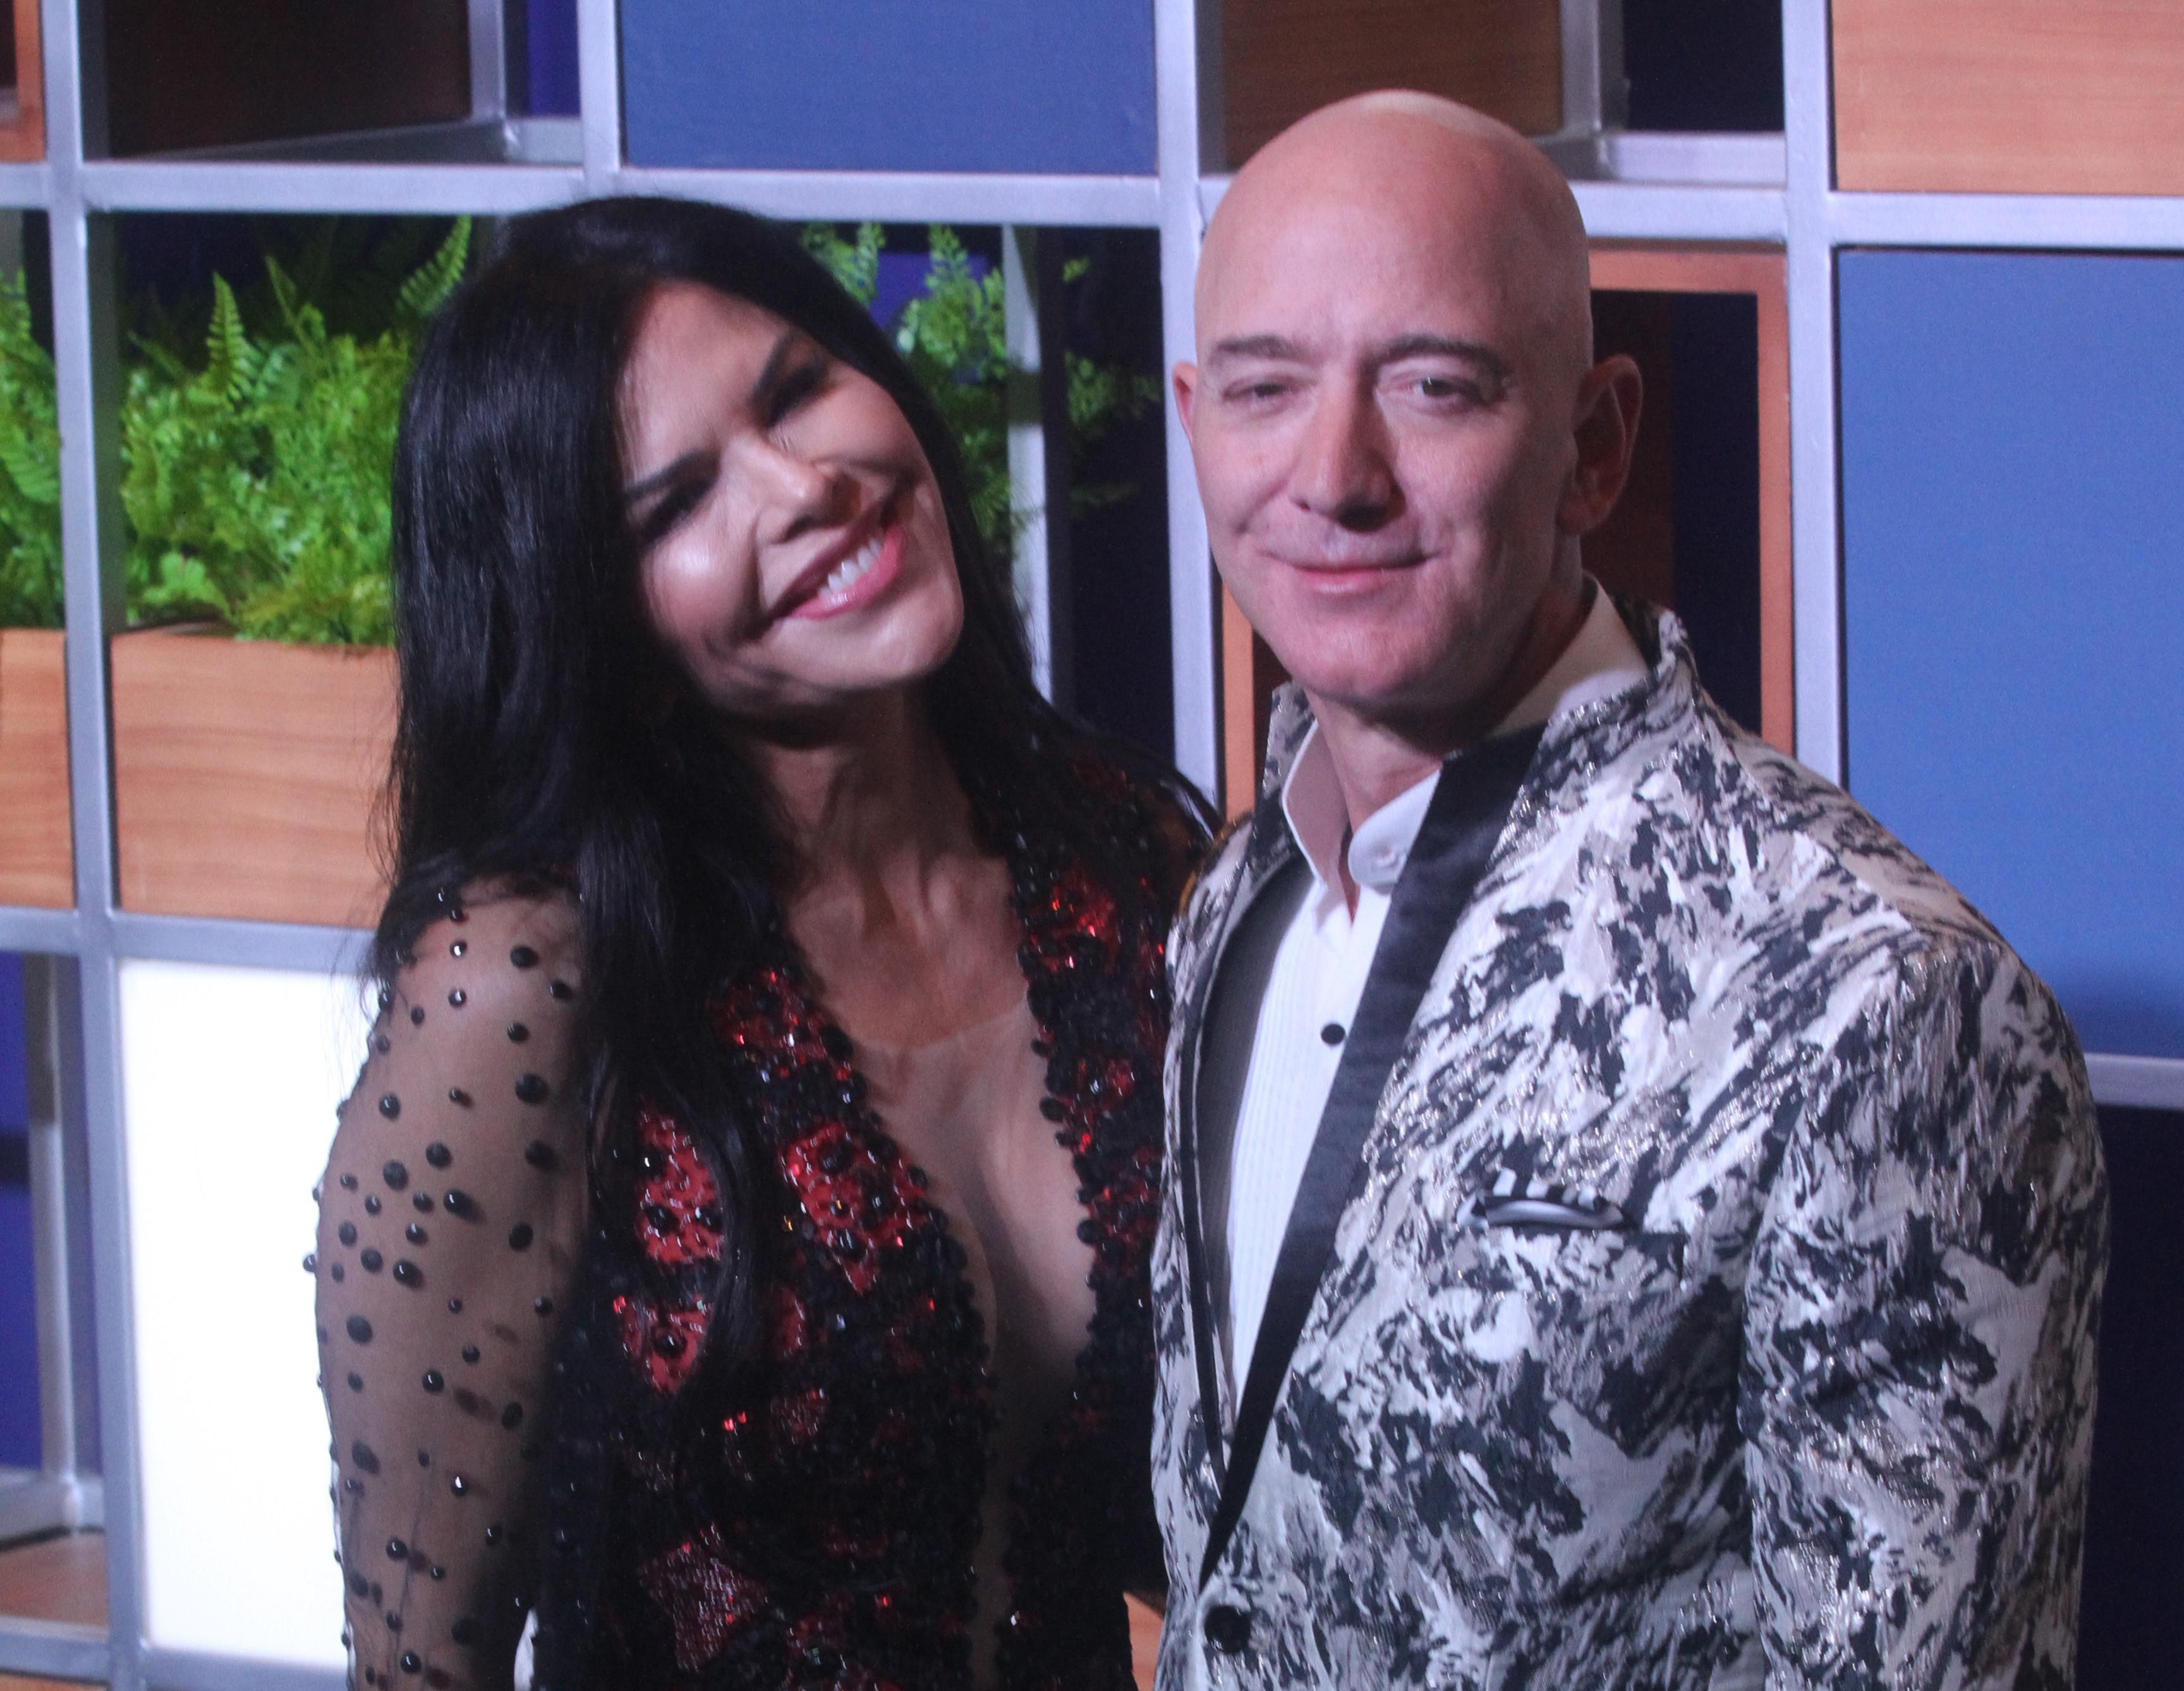 Jeff Bezos and Lauren Sanchez hold hands during red carpet debut in India